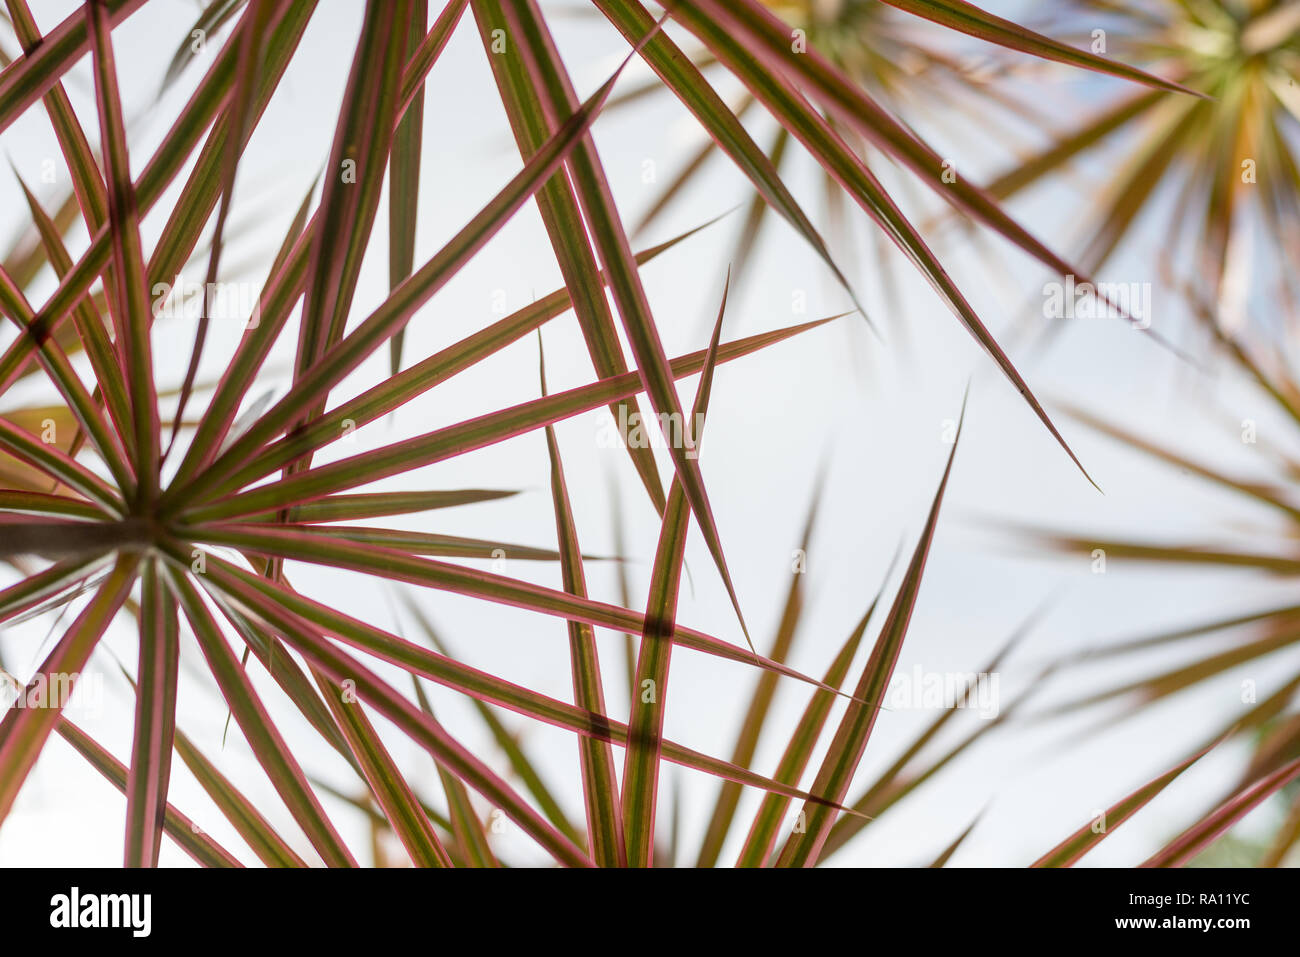 A grove of a tropical plant called Madagascar Dragon Tree (Dracaena Marginata) - upward view horizontal orientation - Stock Image